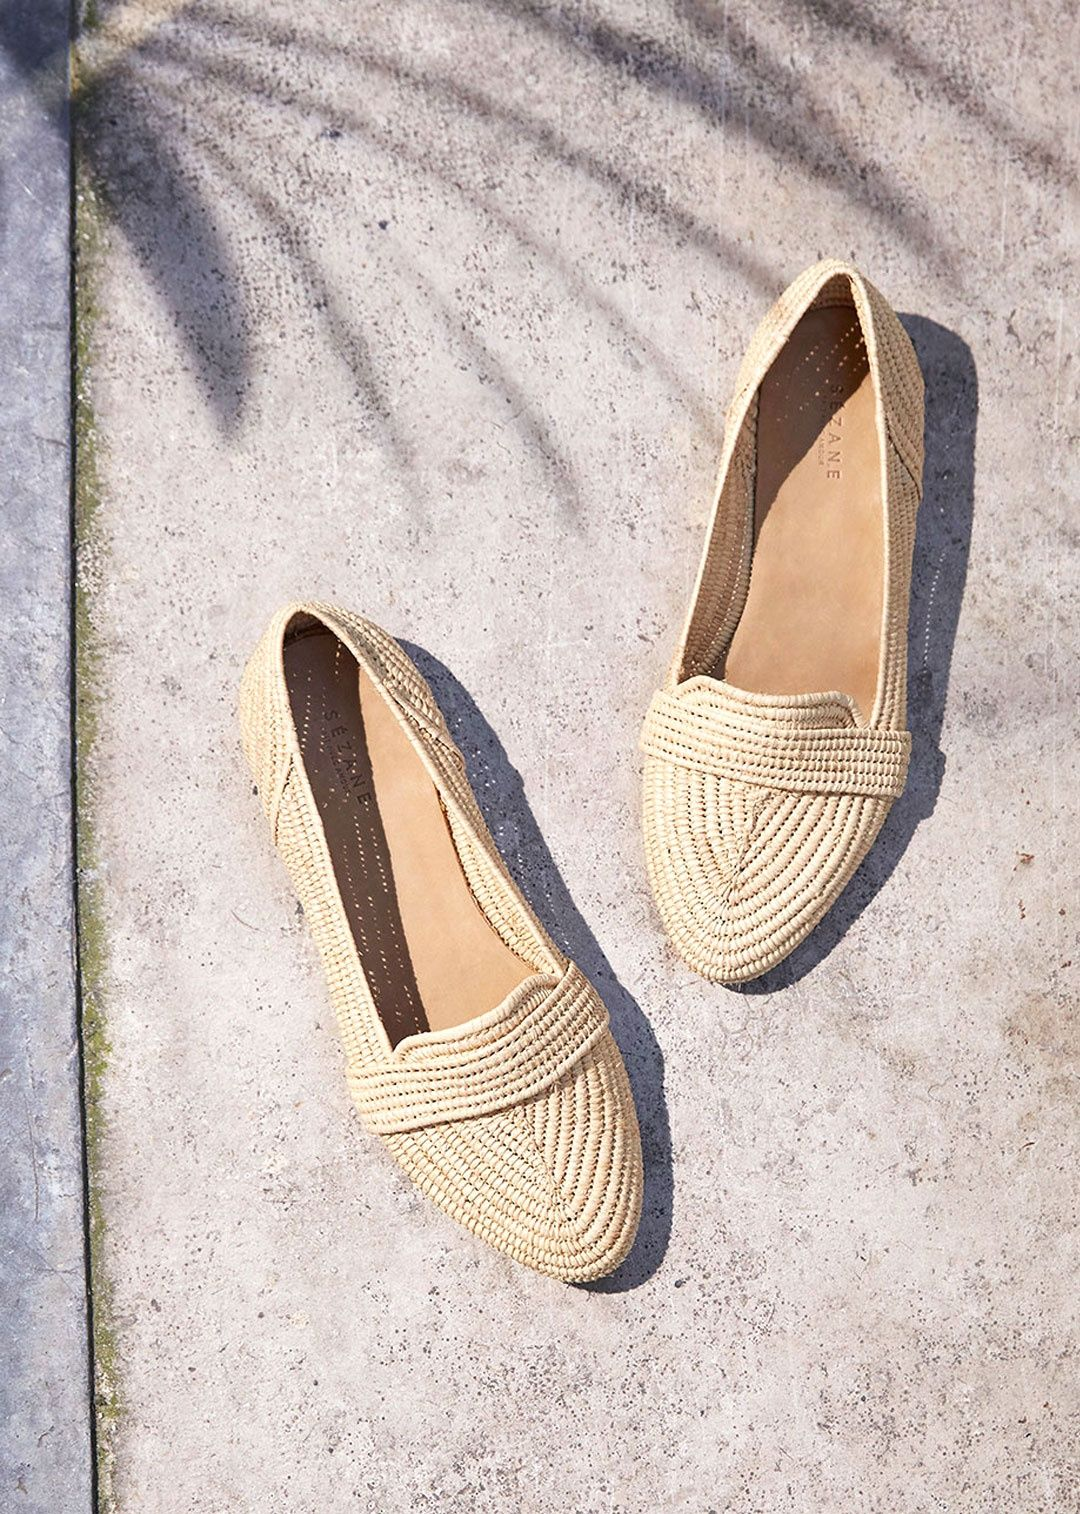 eeed3cb2ea03 Sezane Spring 2017 Mayfair Raffia flats | Summer Style | Fashion ...